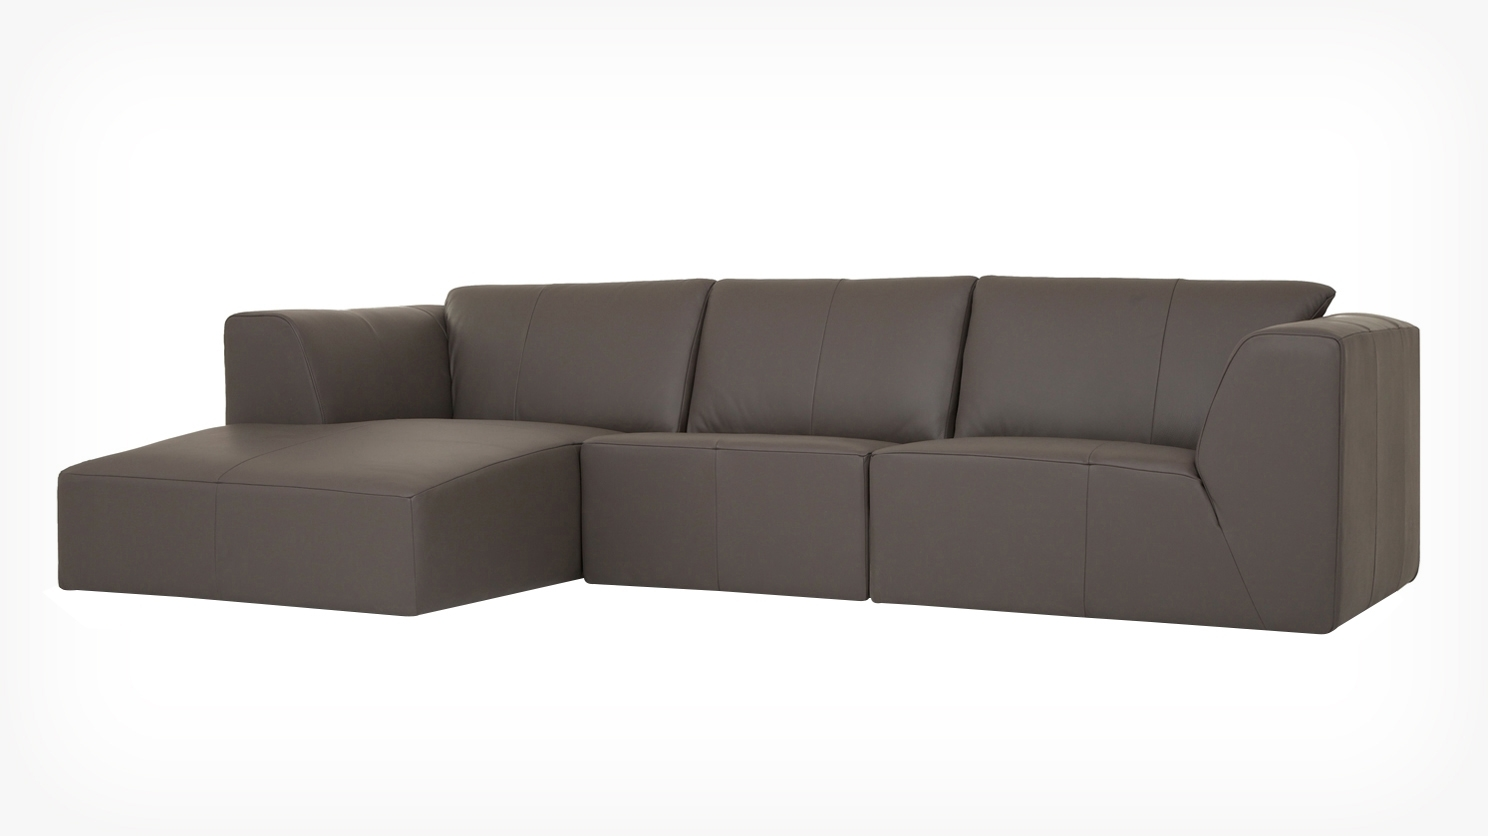 Morten 3 Piece Sectional Sofa With Chaise – Leather With Regard To 3 Piece Sectional Sleeper Sofas (View 14 of 20)